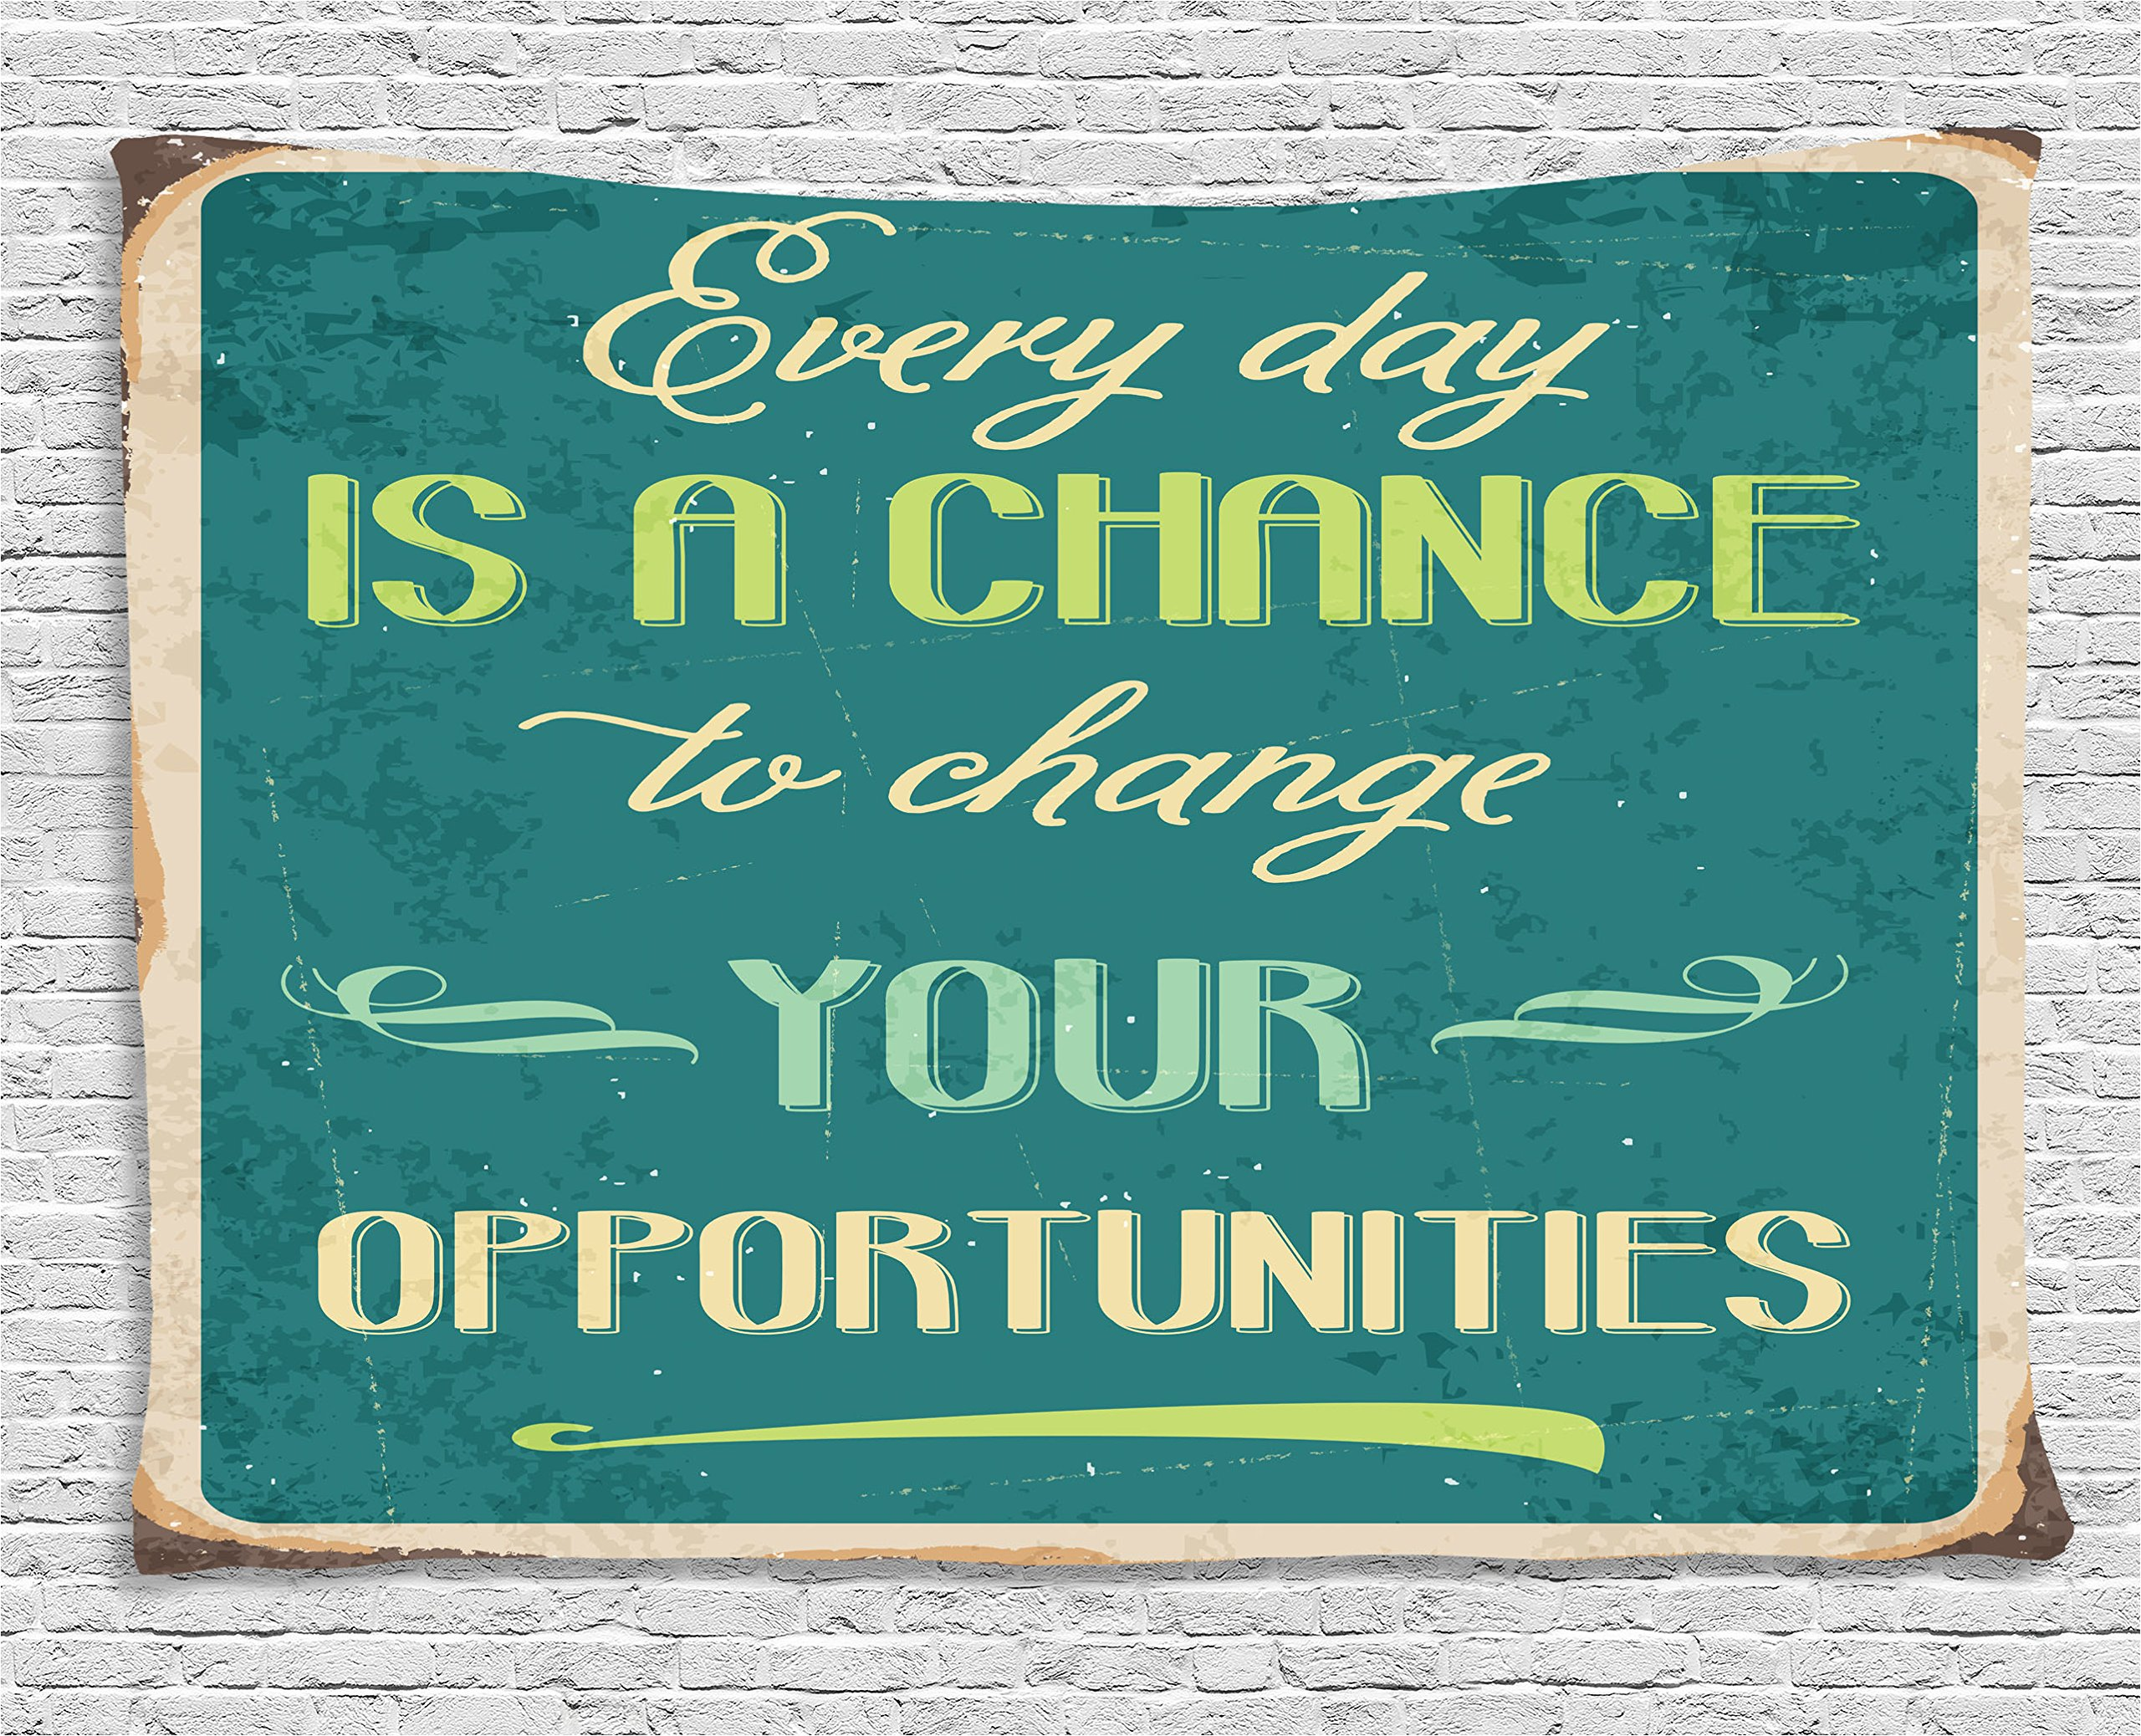 Ambesonne Lifestyle Tapestry, Every Day is a Chance to Change Your Opportunities Quote Retro Poster Print, Wall Hanging for Bedroom Living Room Dorm, 80 W X 60 L Inches, Jade Green Tan